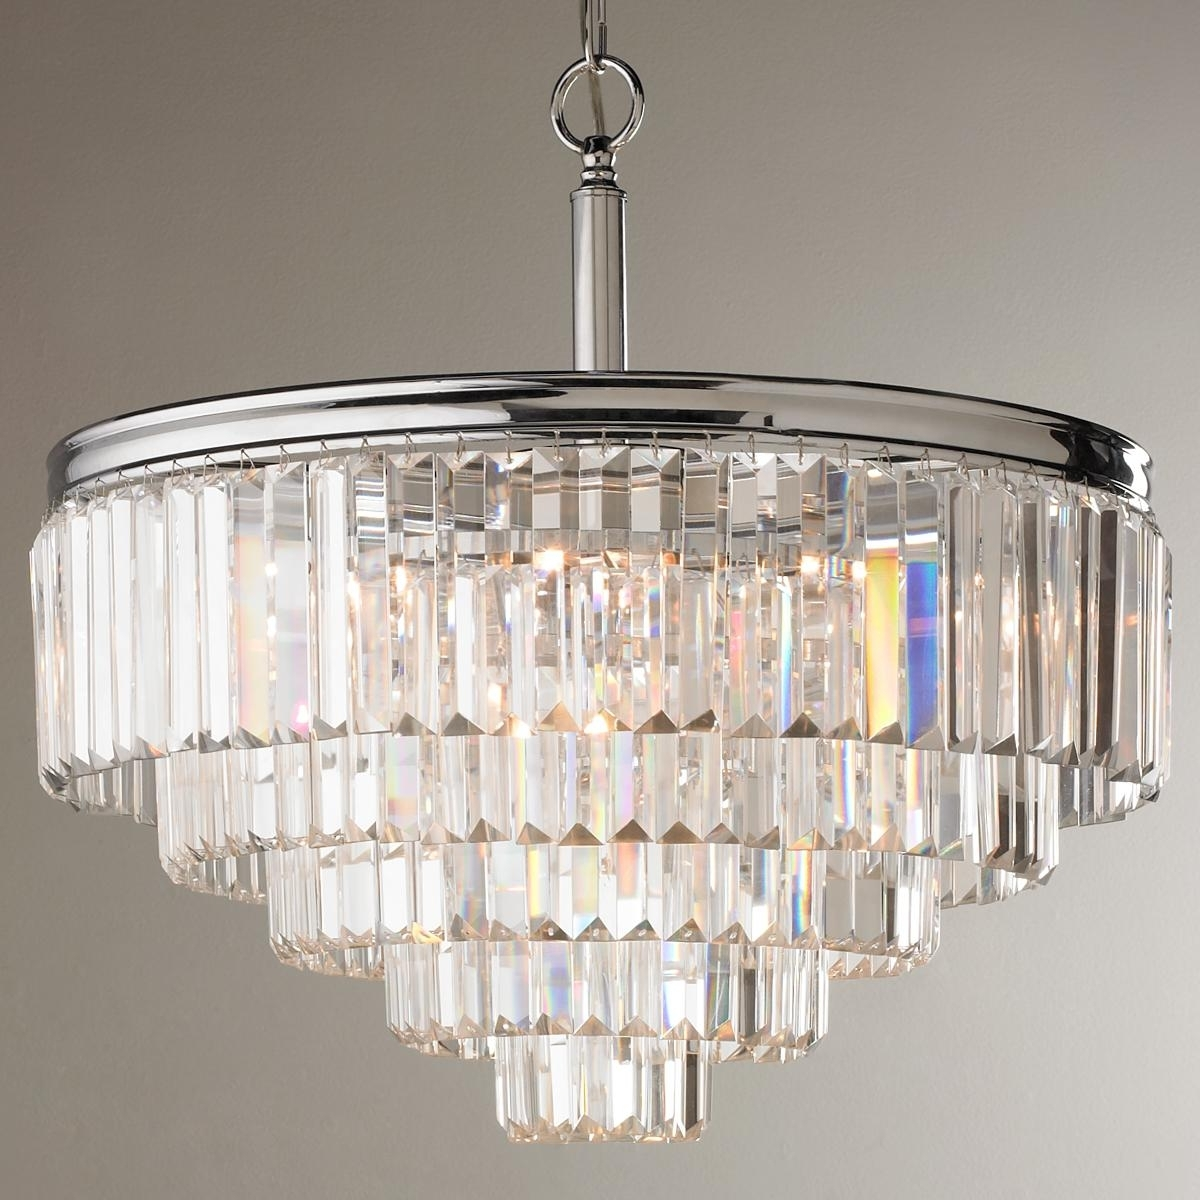 Convertible Throughout Modern Glass Chandeliers (View 6 of 15)